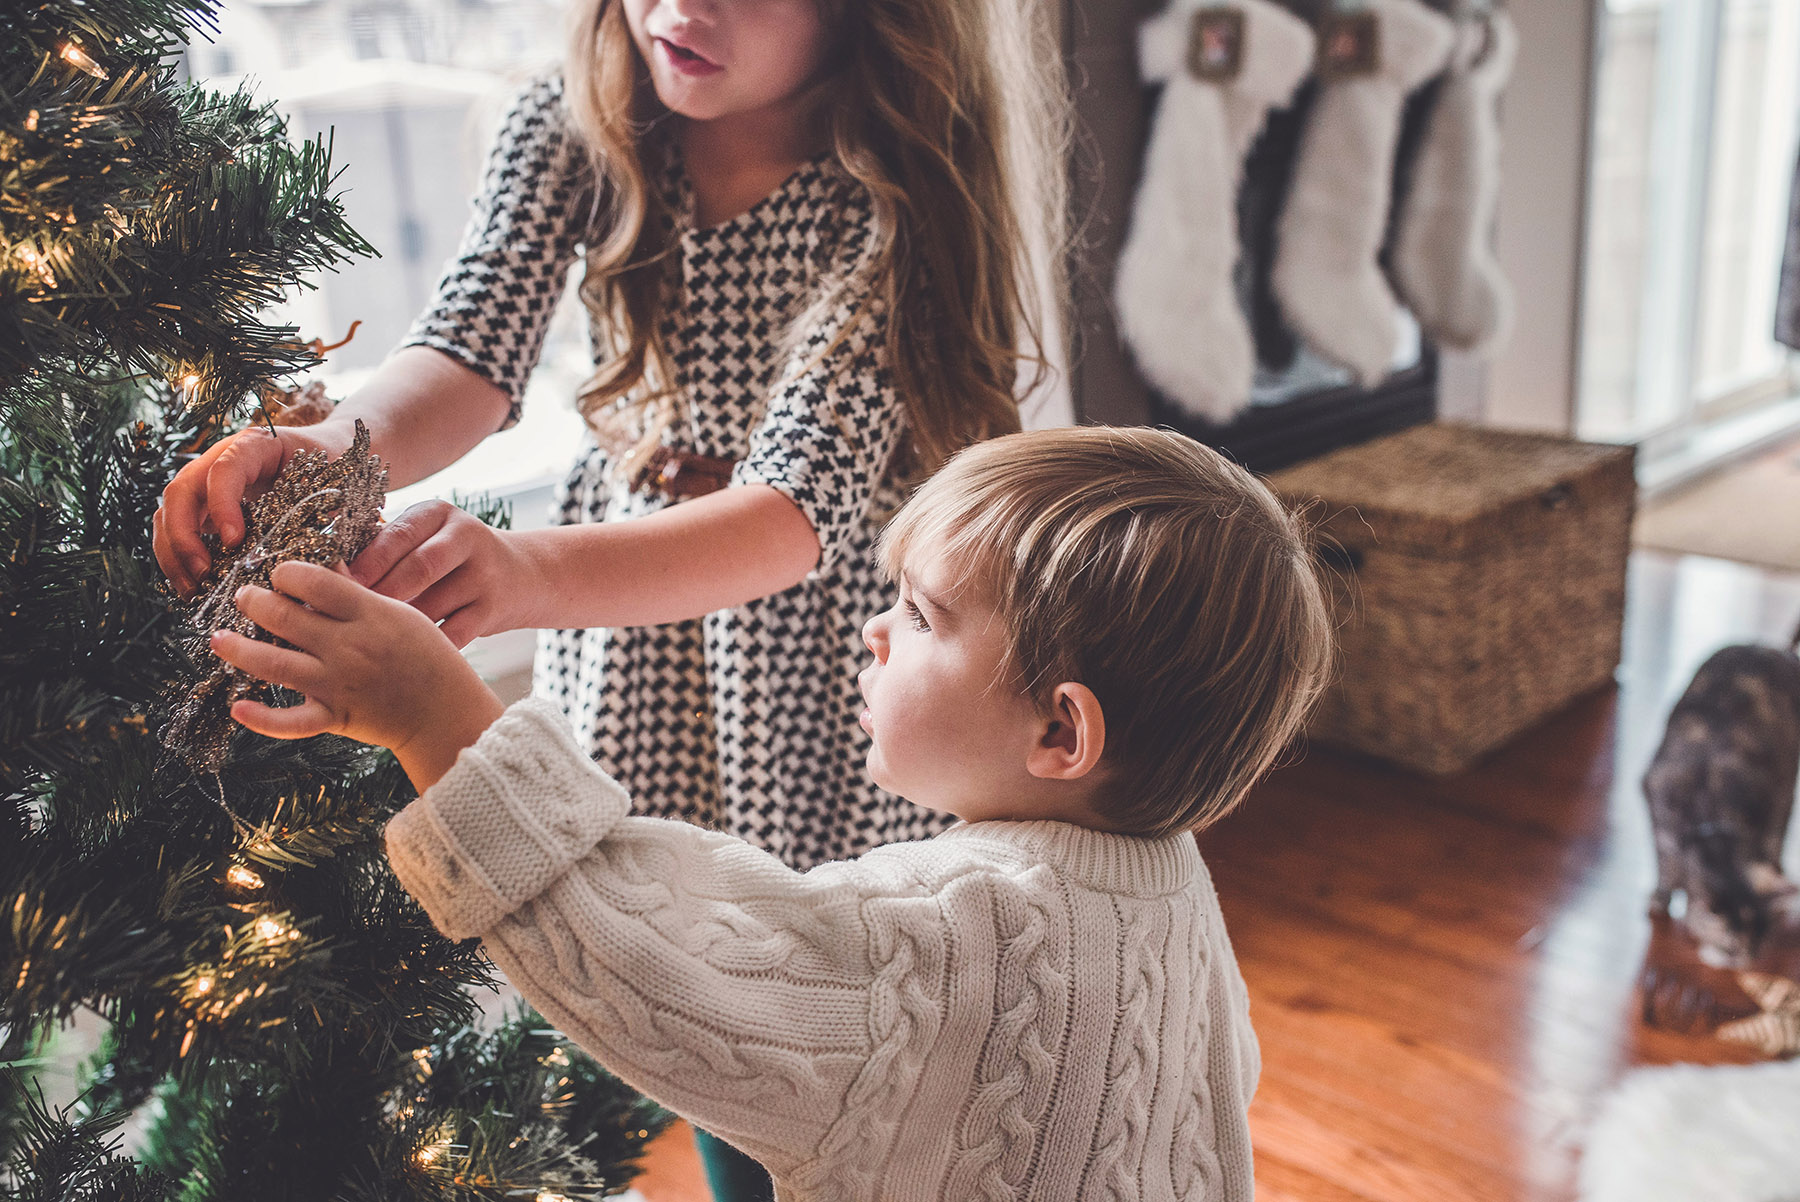 Maximizing Family Time During the Holidays